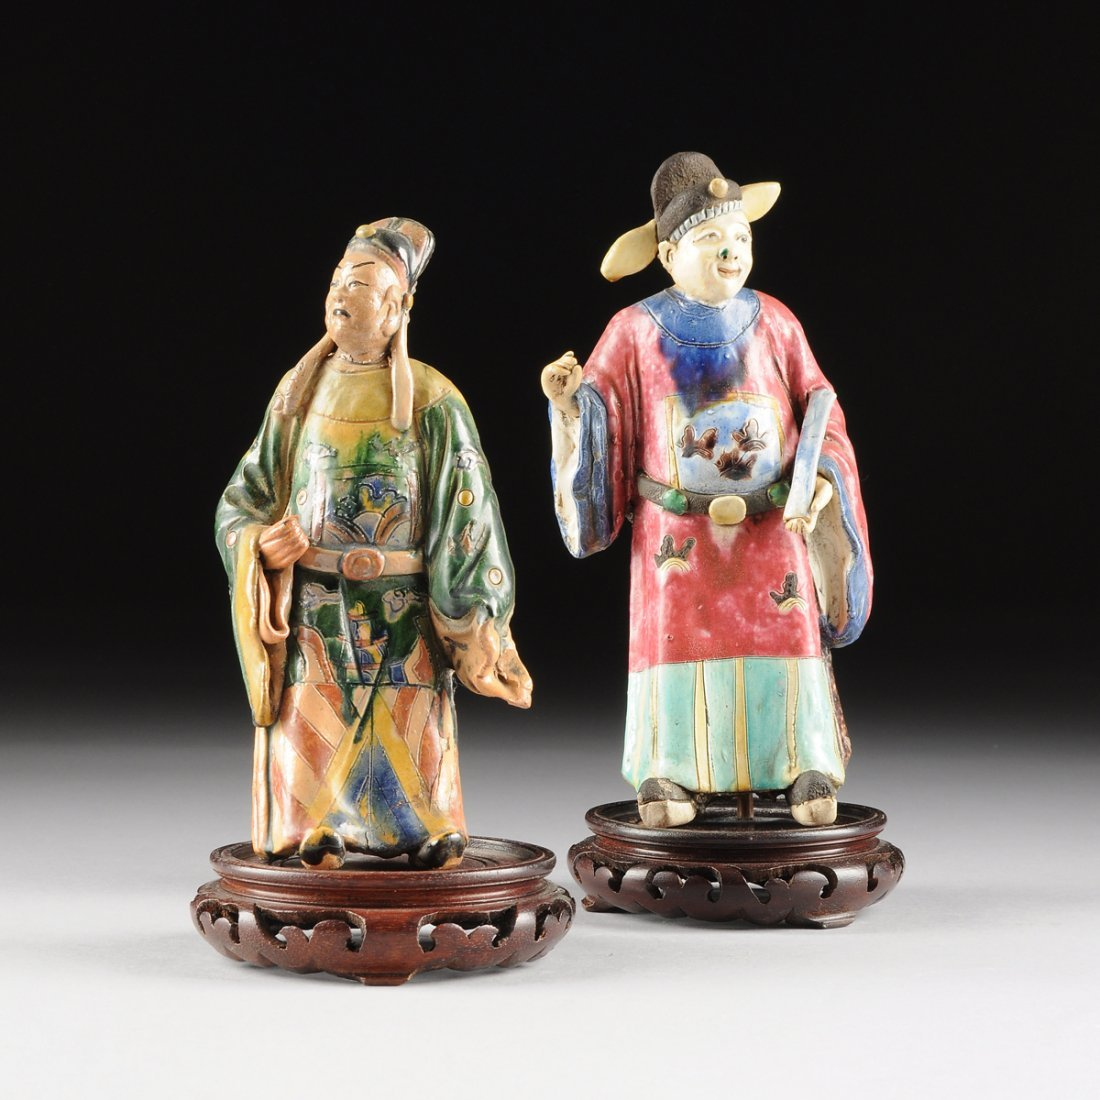 TWO CHINESE POLYCHROME GLAZED EARTHENWARE DEITIES,